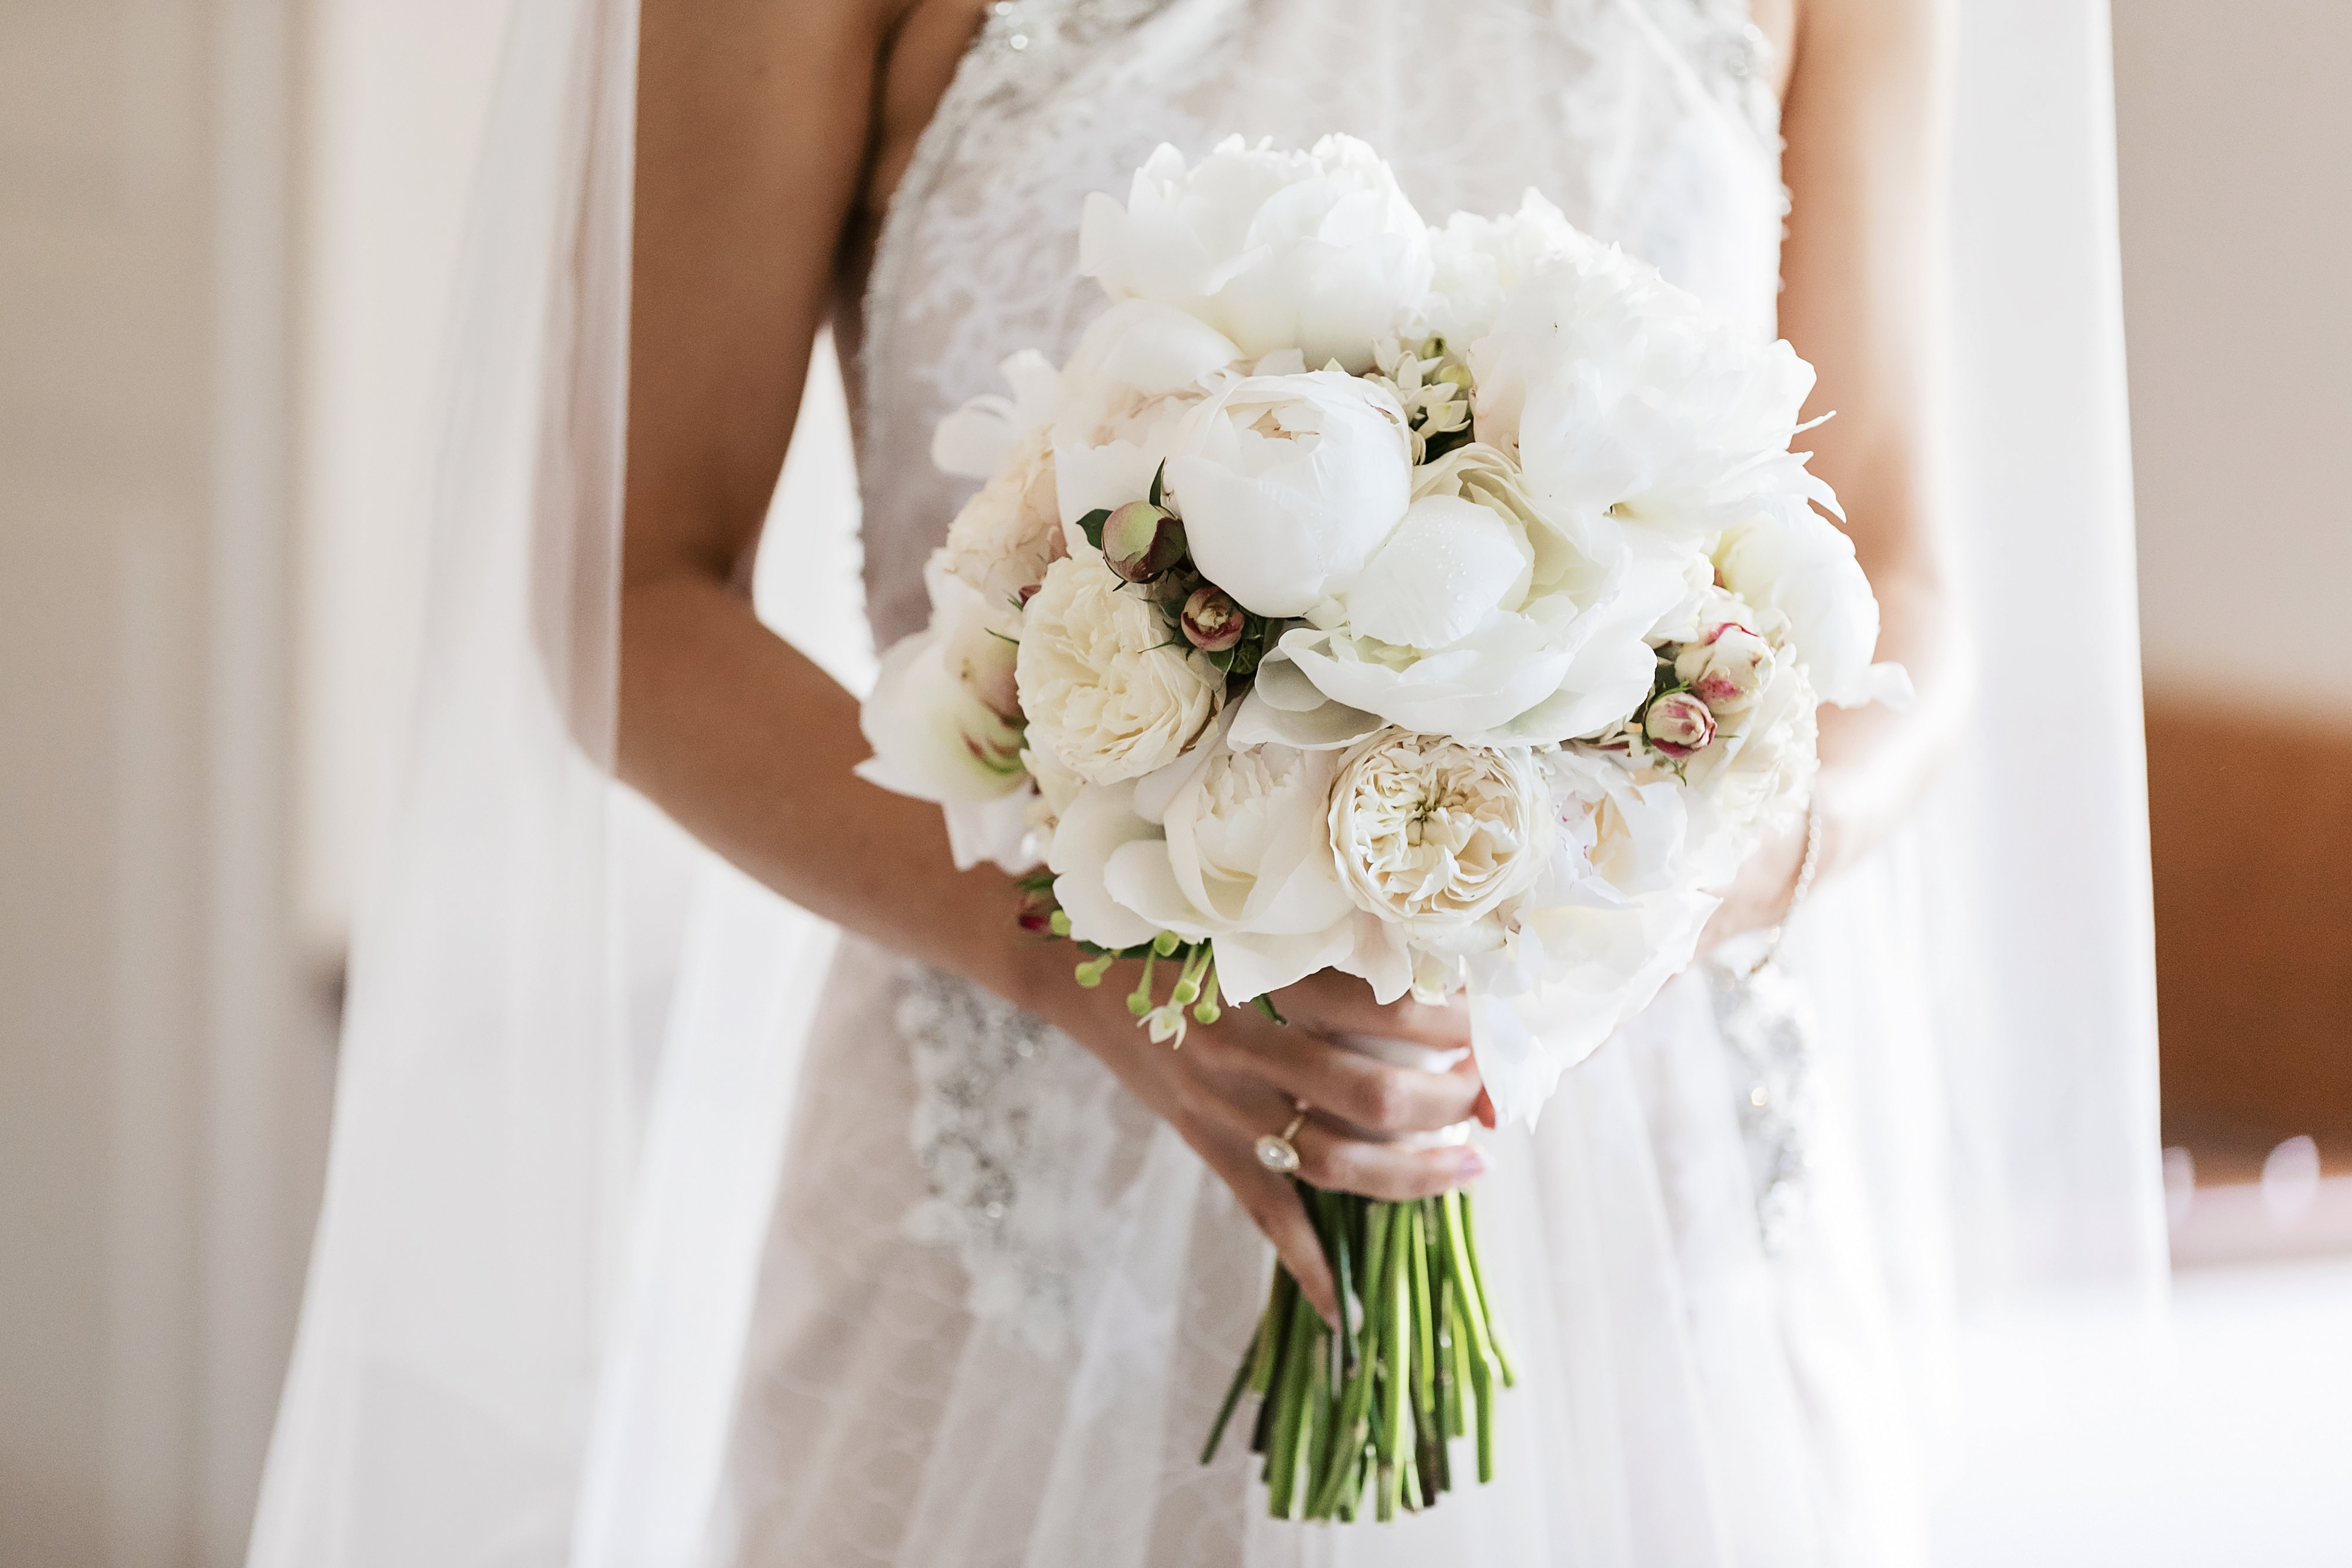 Modern white wedding bouquet featuring peonies